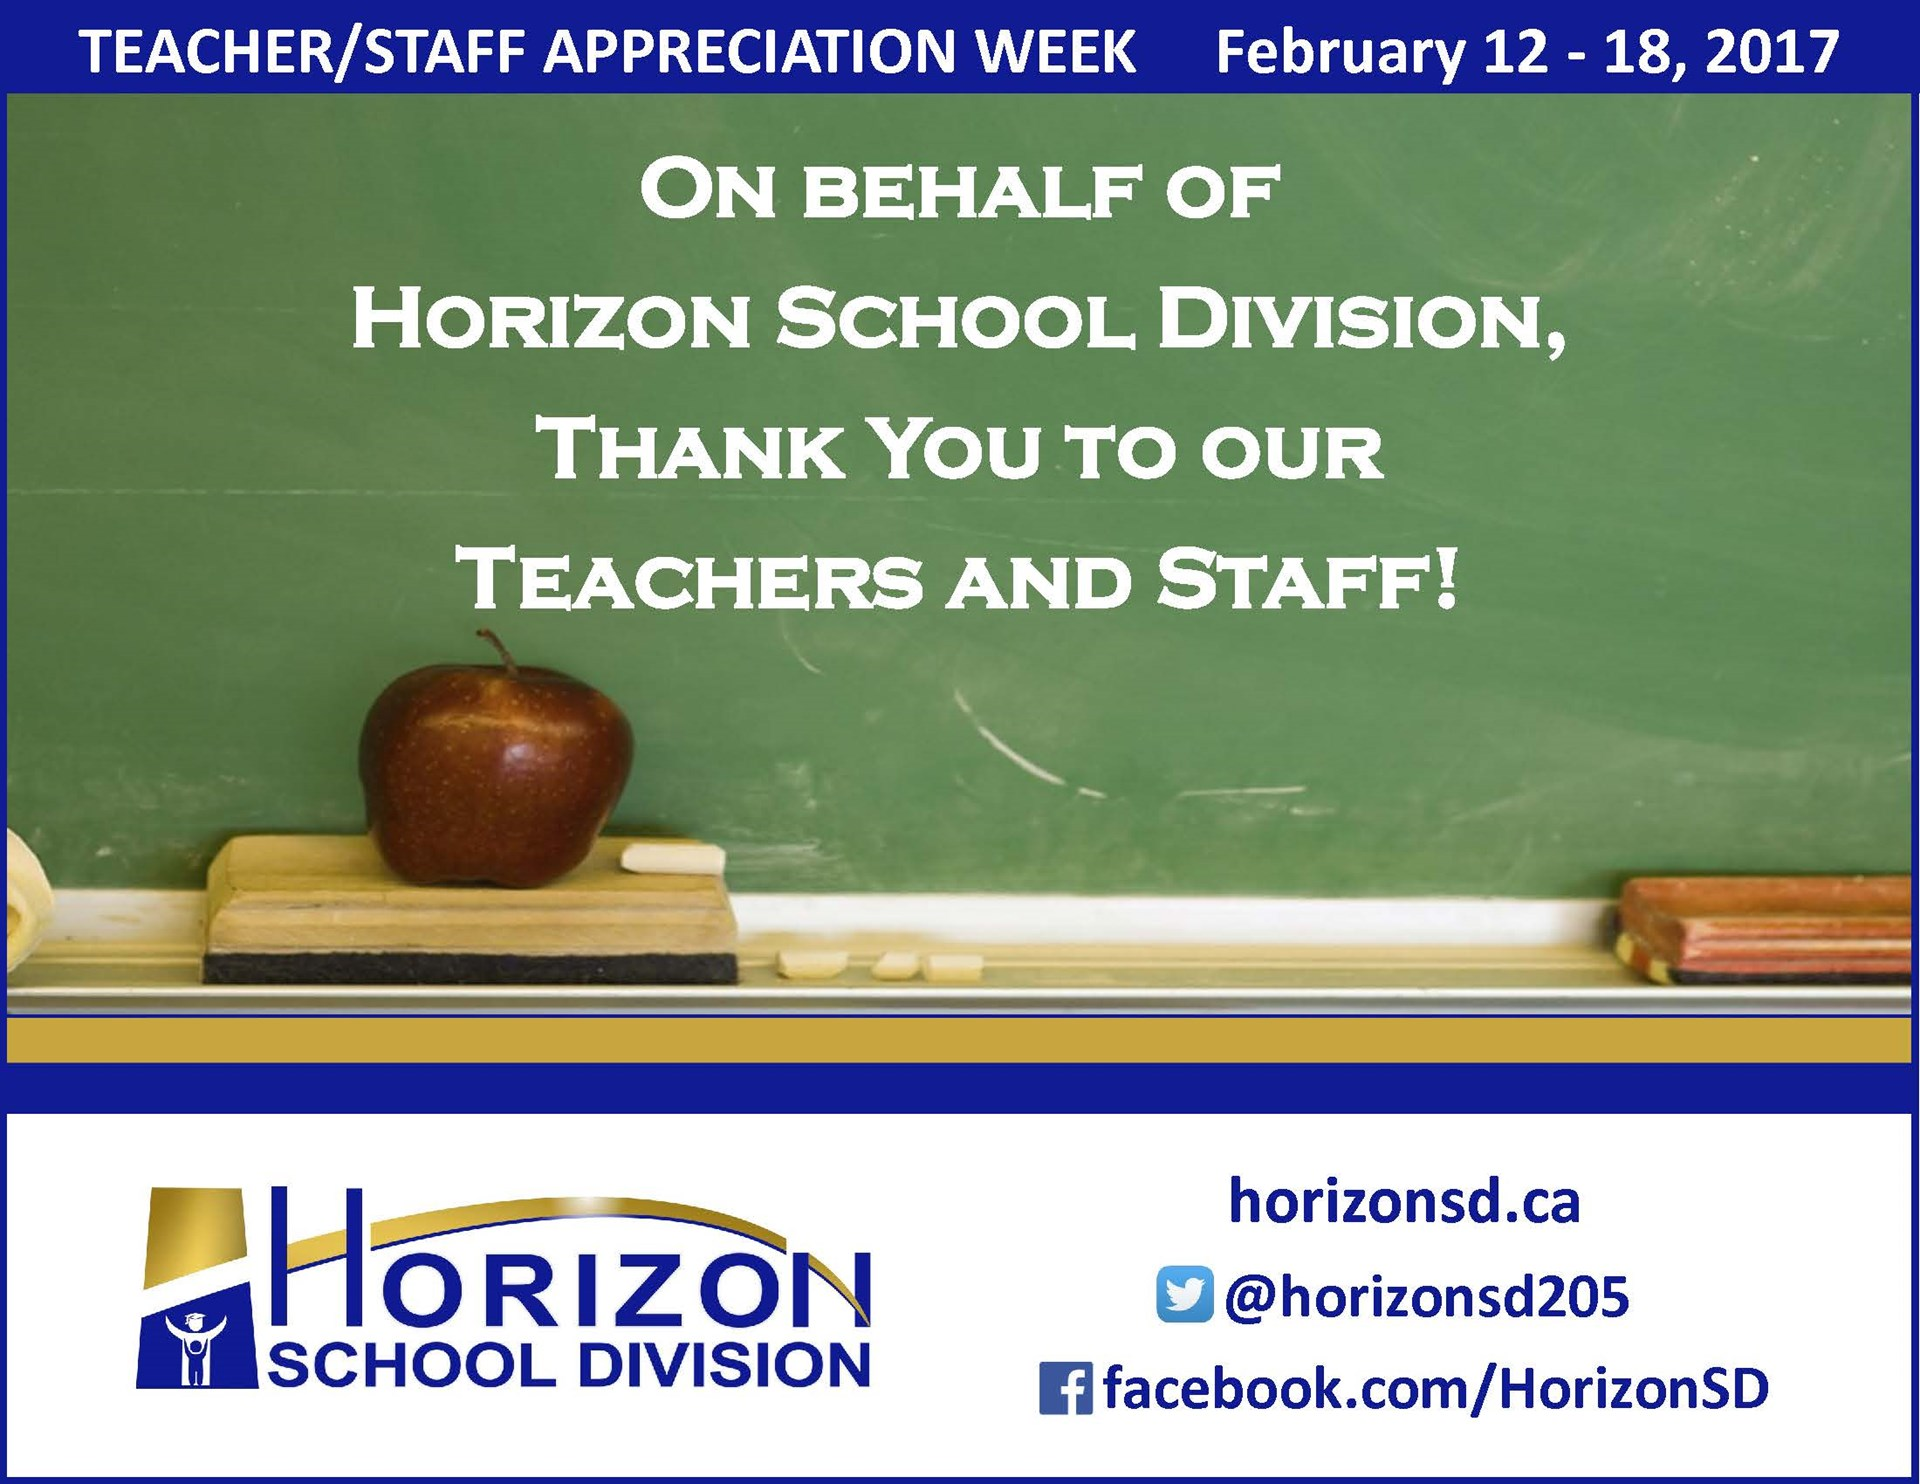 2017 Teacher Staff Appreciation Week Ad.jpg